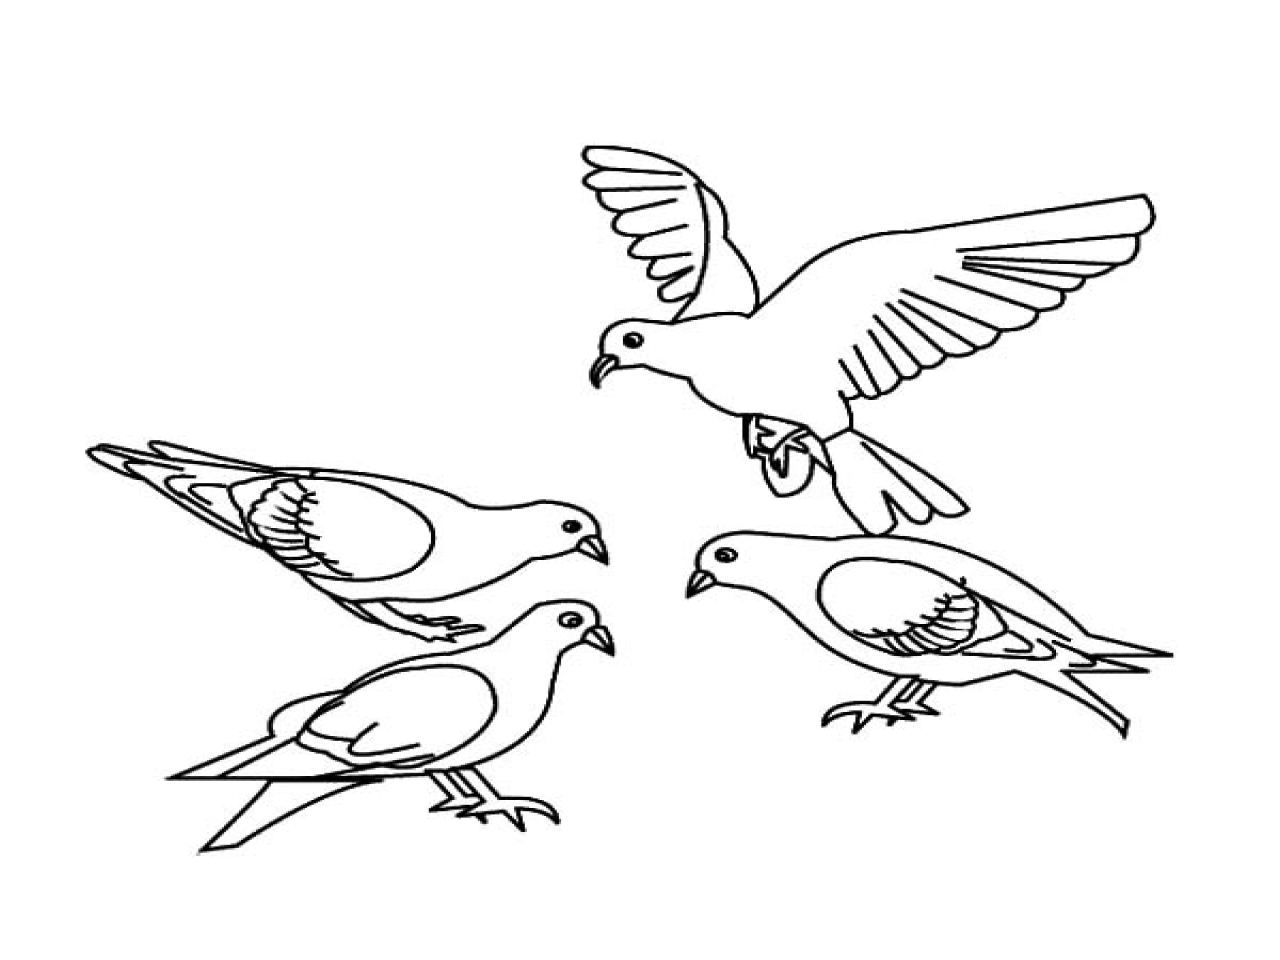 28 Dove Coloring Page Images | FREE COLORING PAGES - Part 3